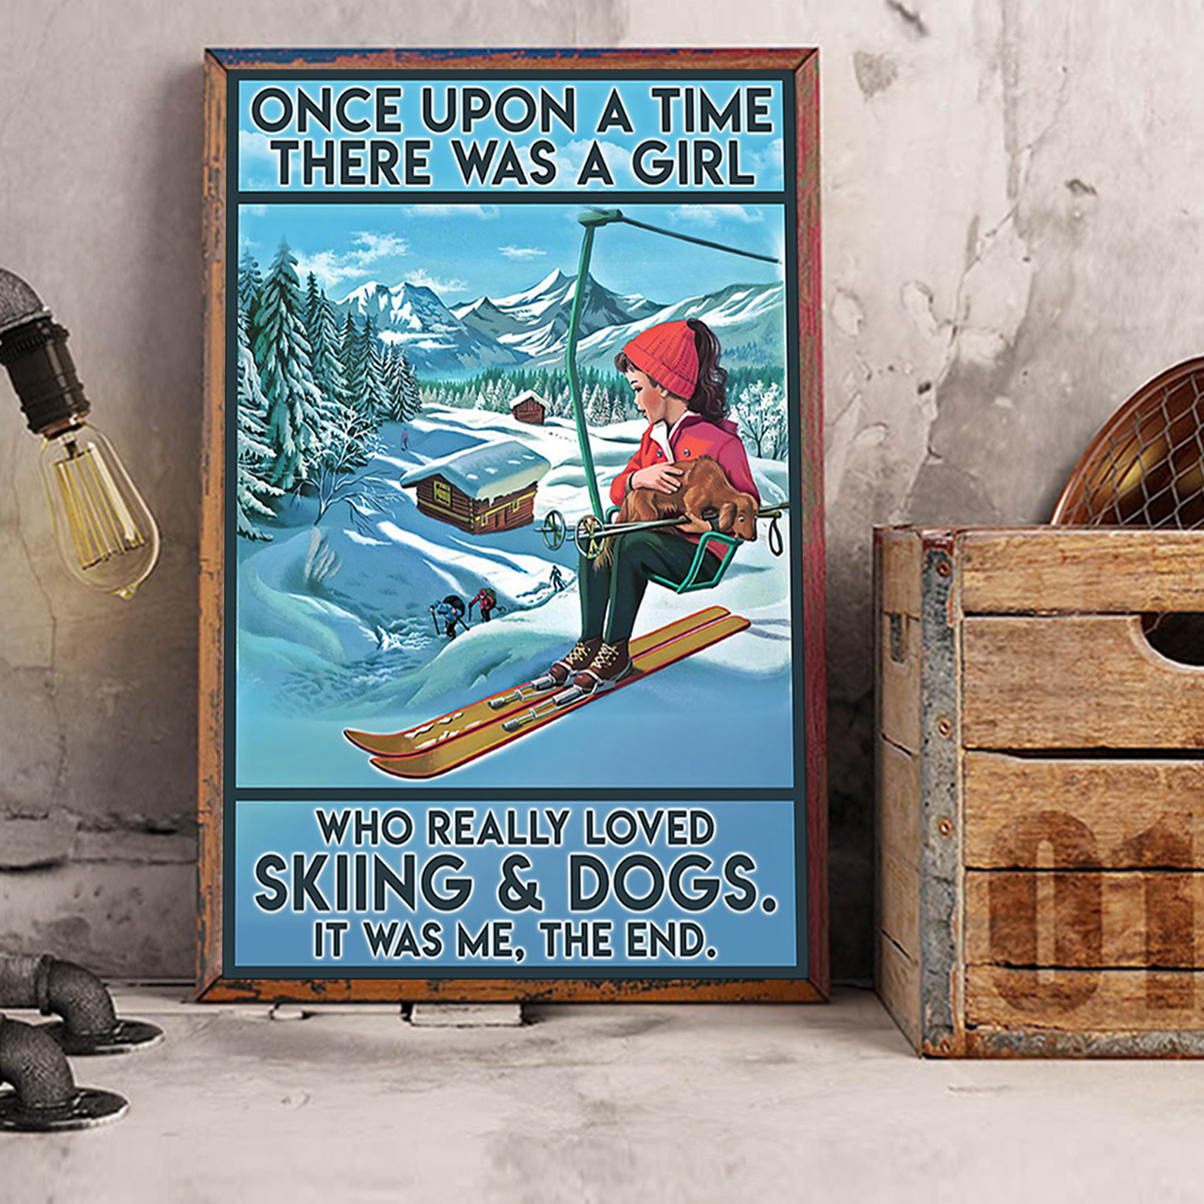 Once upon a time there was a girl who really loved skiing and dogs poster A2